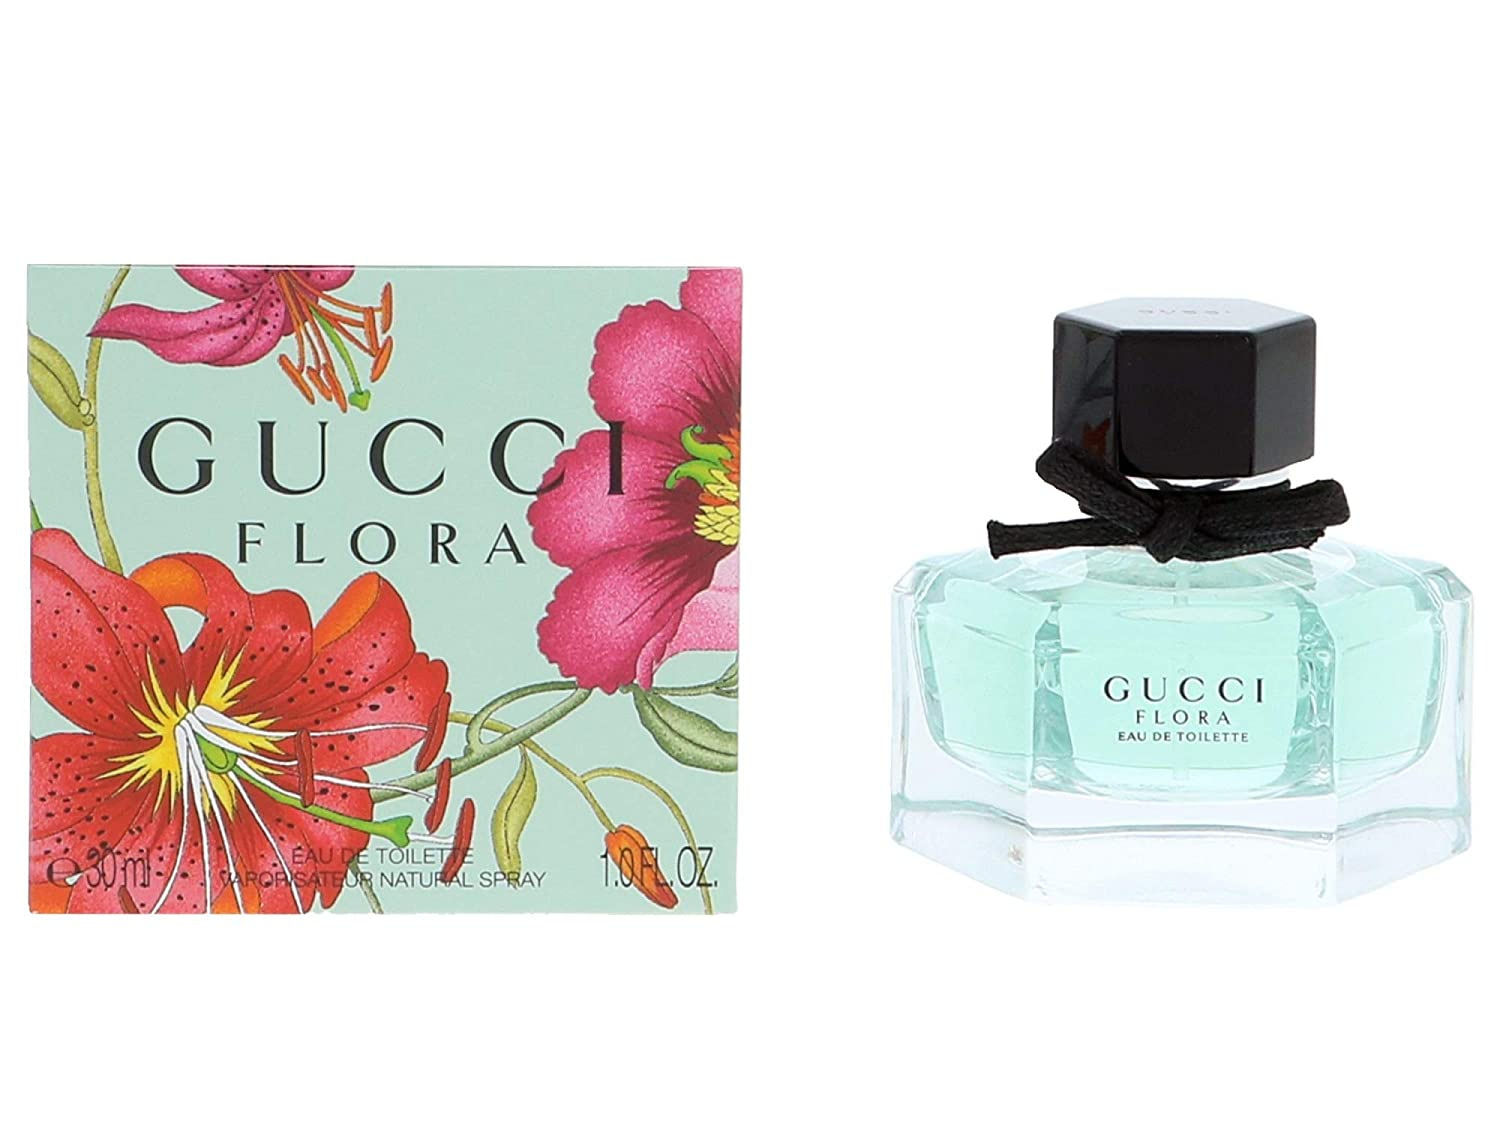 8b3efec5c Gucci Flora Eau de Toilette for Women - 30 ml: Amazon.co.uk: Beauty